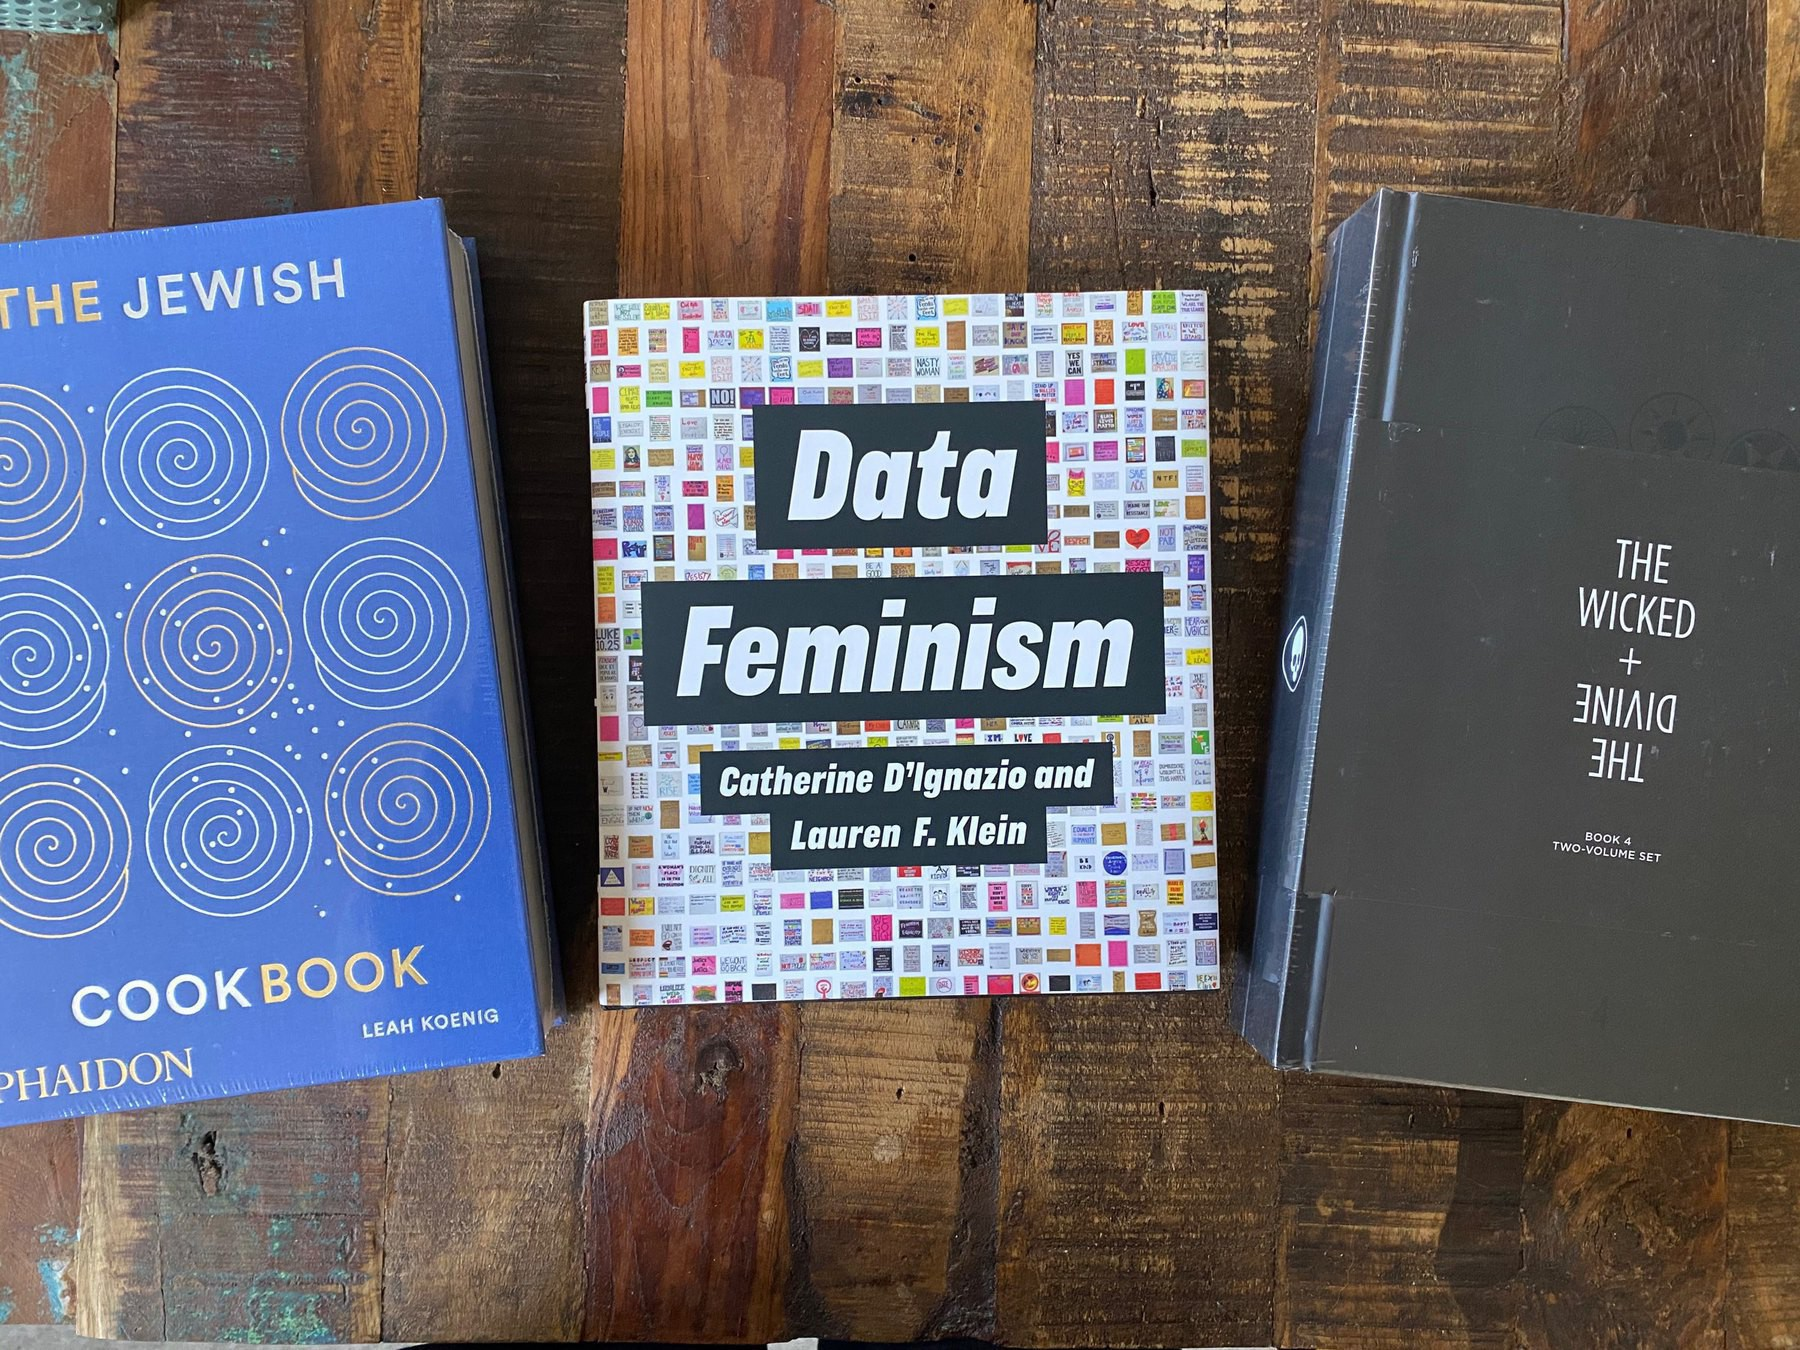 The Jewish Cookbook by Leah Koenig, Data Feminism by Catherine D'Ignazio and Lauren F. Klein, and The Wicked + The Divine Book 4, Two-Volume Set